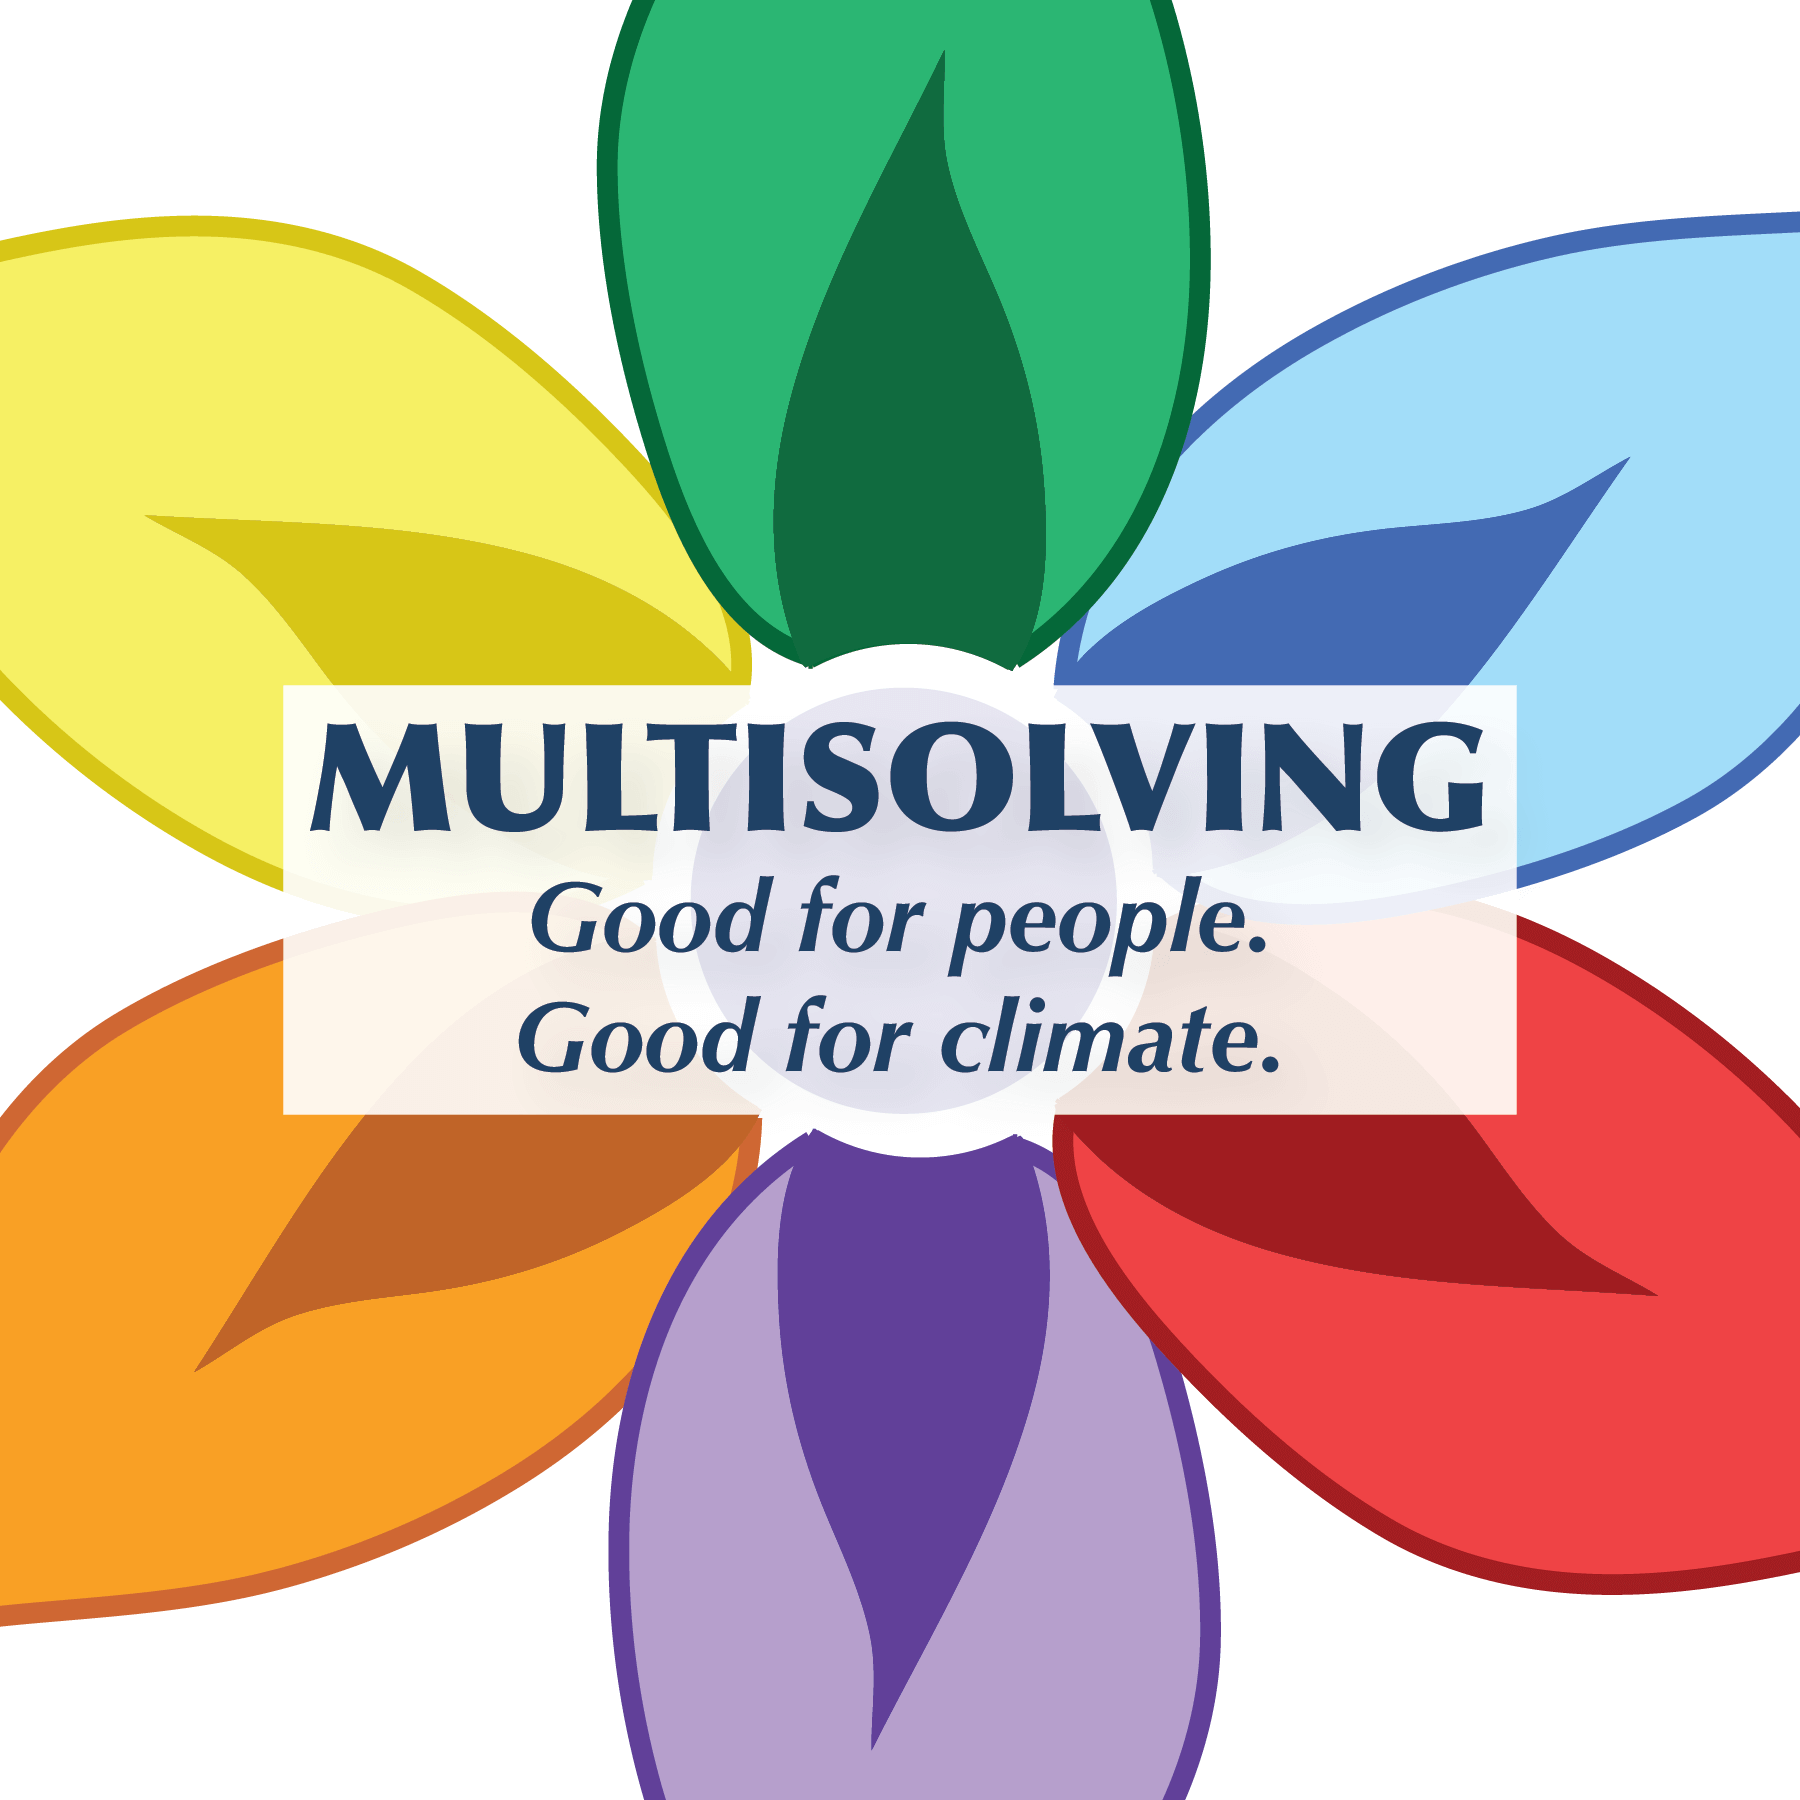 Energy clipart exercise benefit. Programs climate interactive multisolving